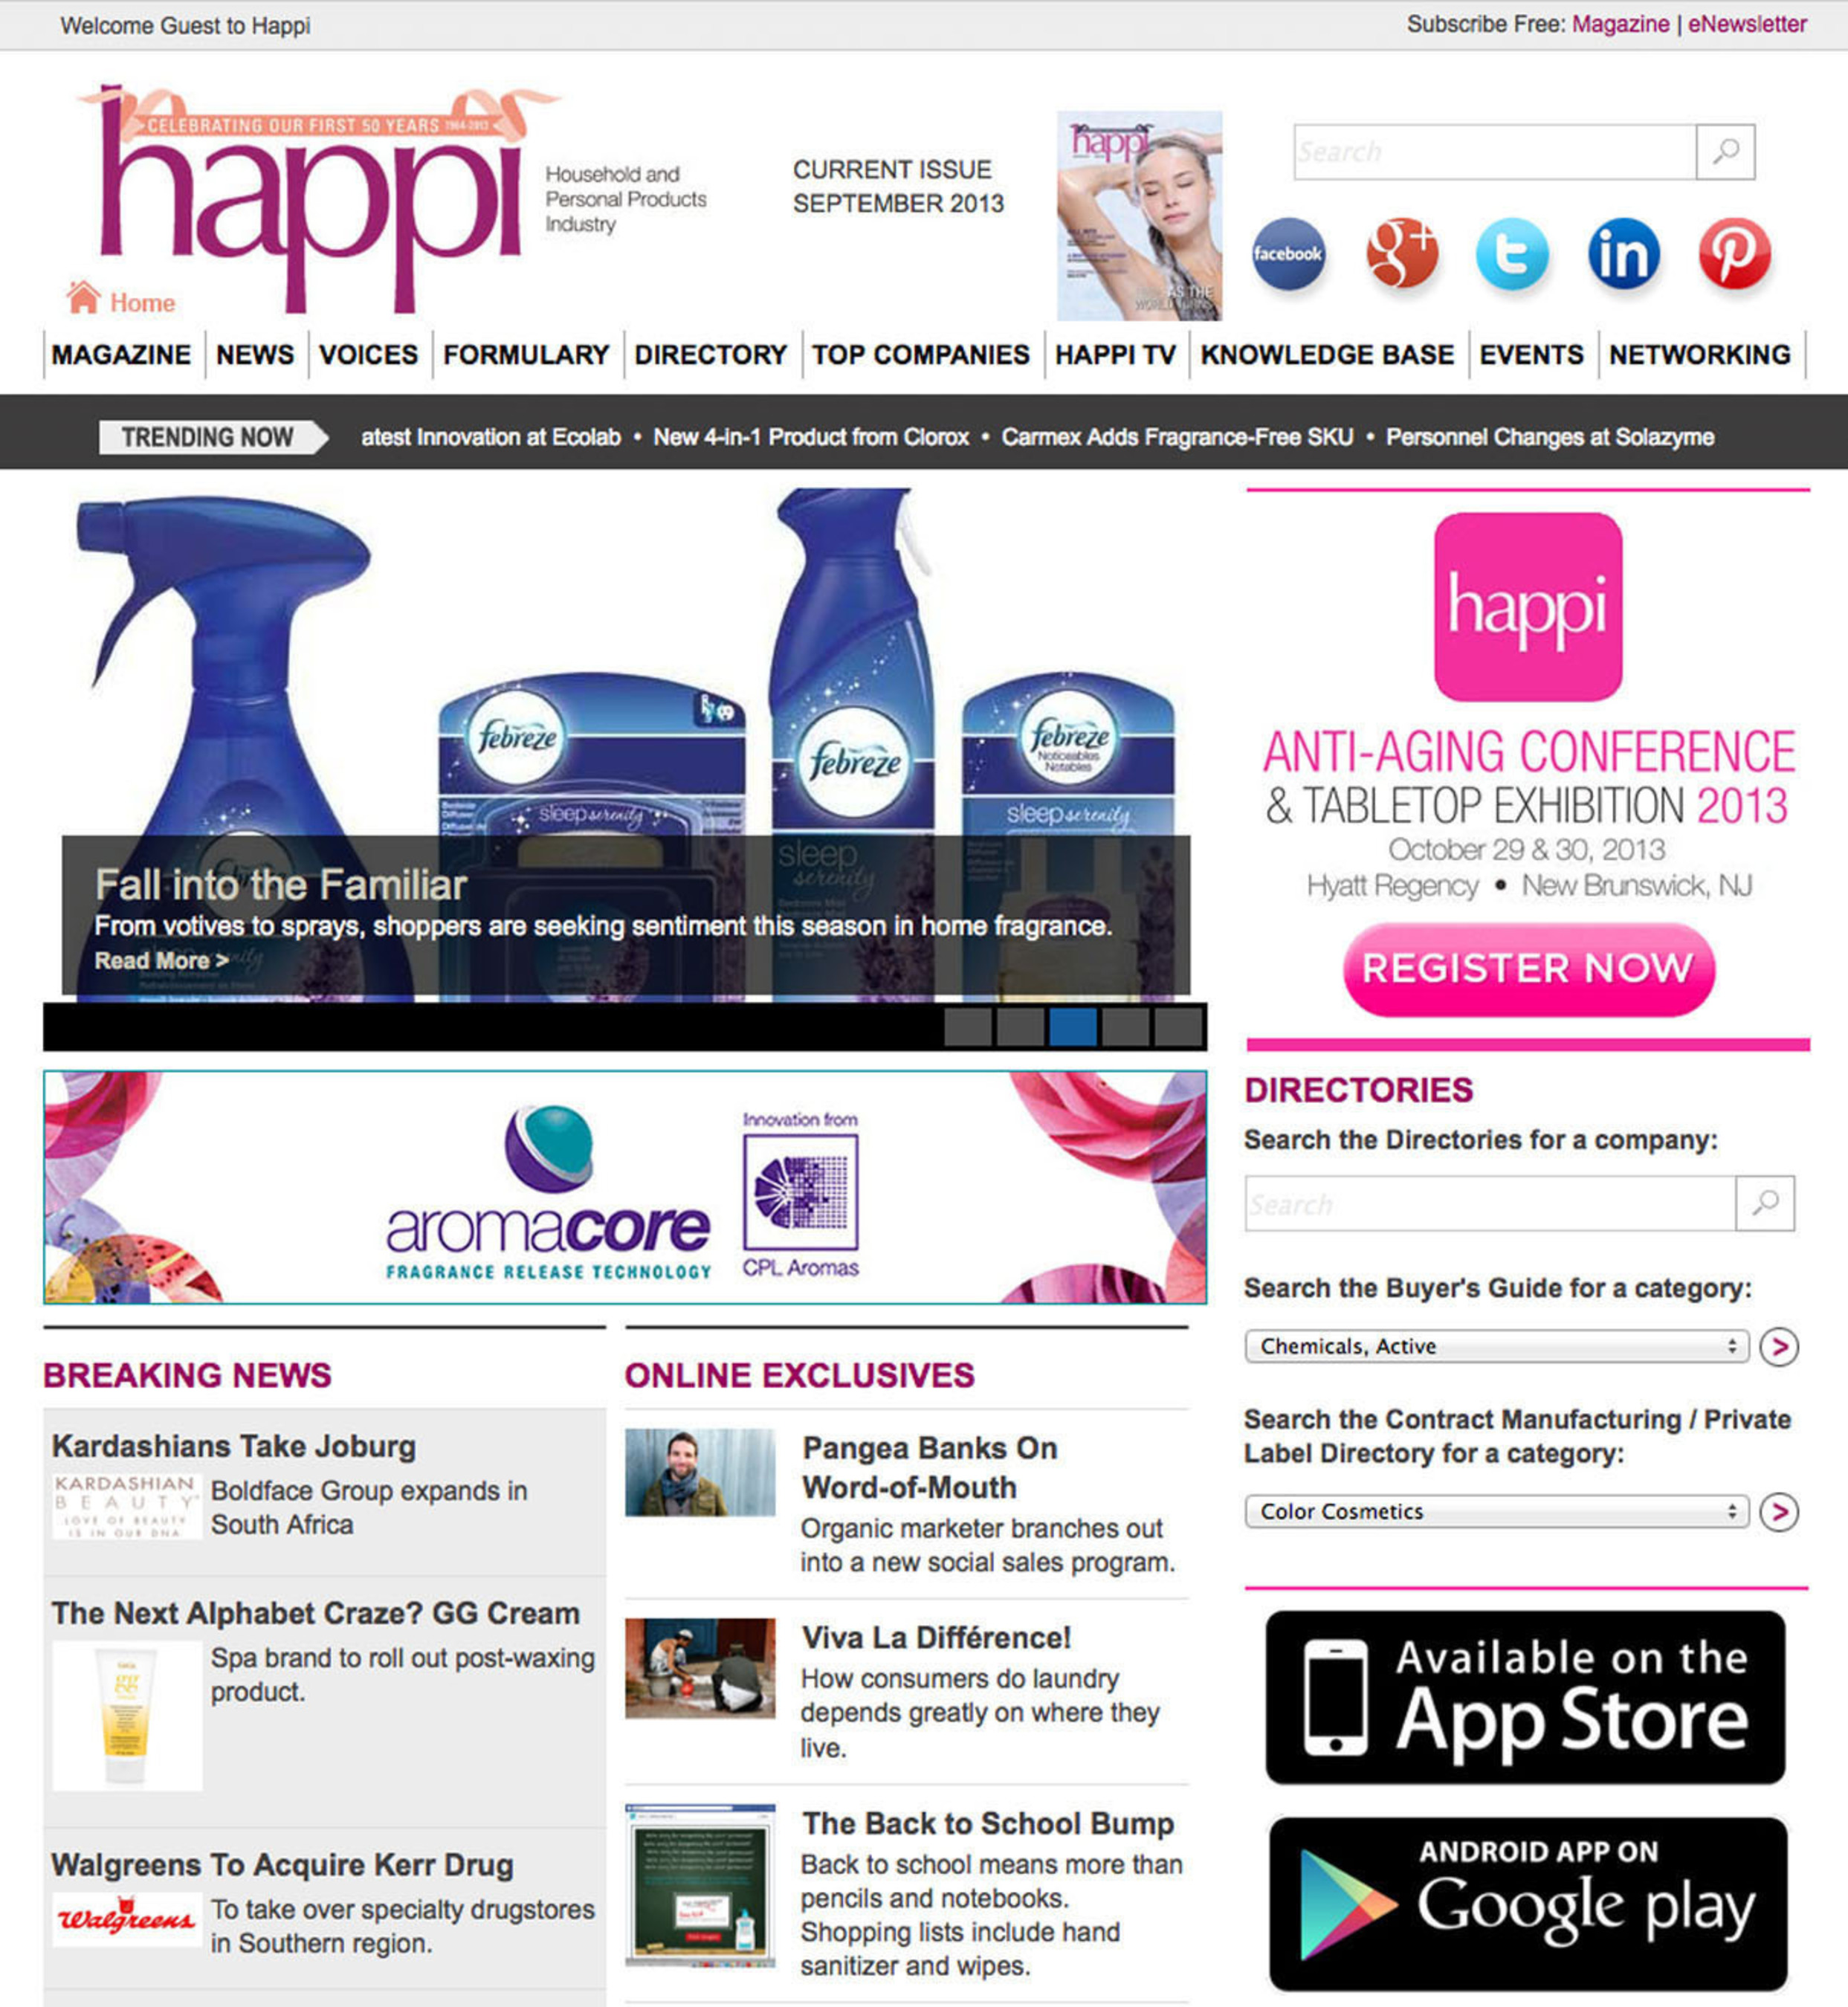 Happi magazine has launched its newly designed website, www.happi.com, featuring rich content, an easy-to-use Buyers' Guide, enhanced navigational tools and additional resources that will streamline access to a comprehensive archive of household and personal products industry news, information, analysis and opinion. (PRNewsFoto/HAPPI Magazine) (PRNewsFoto/HAPPI MAGAZINE)